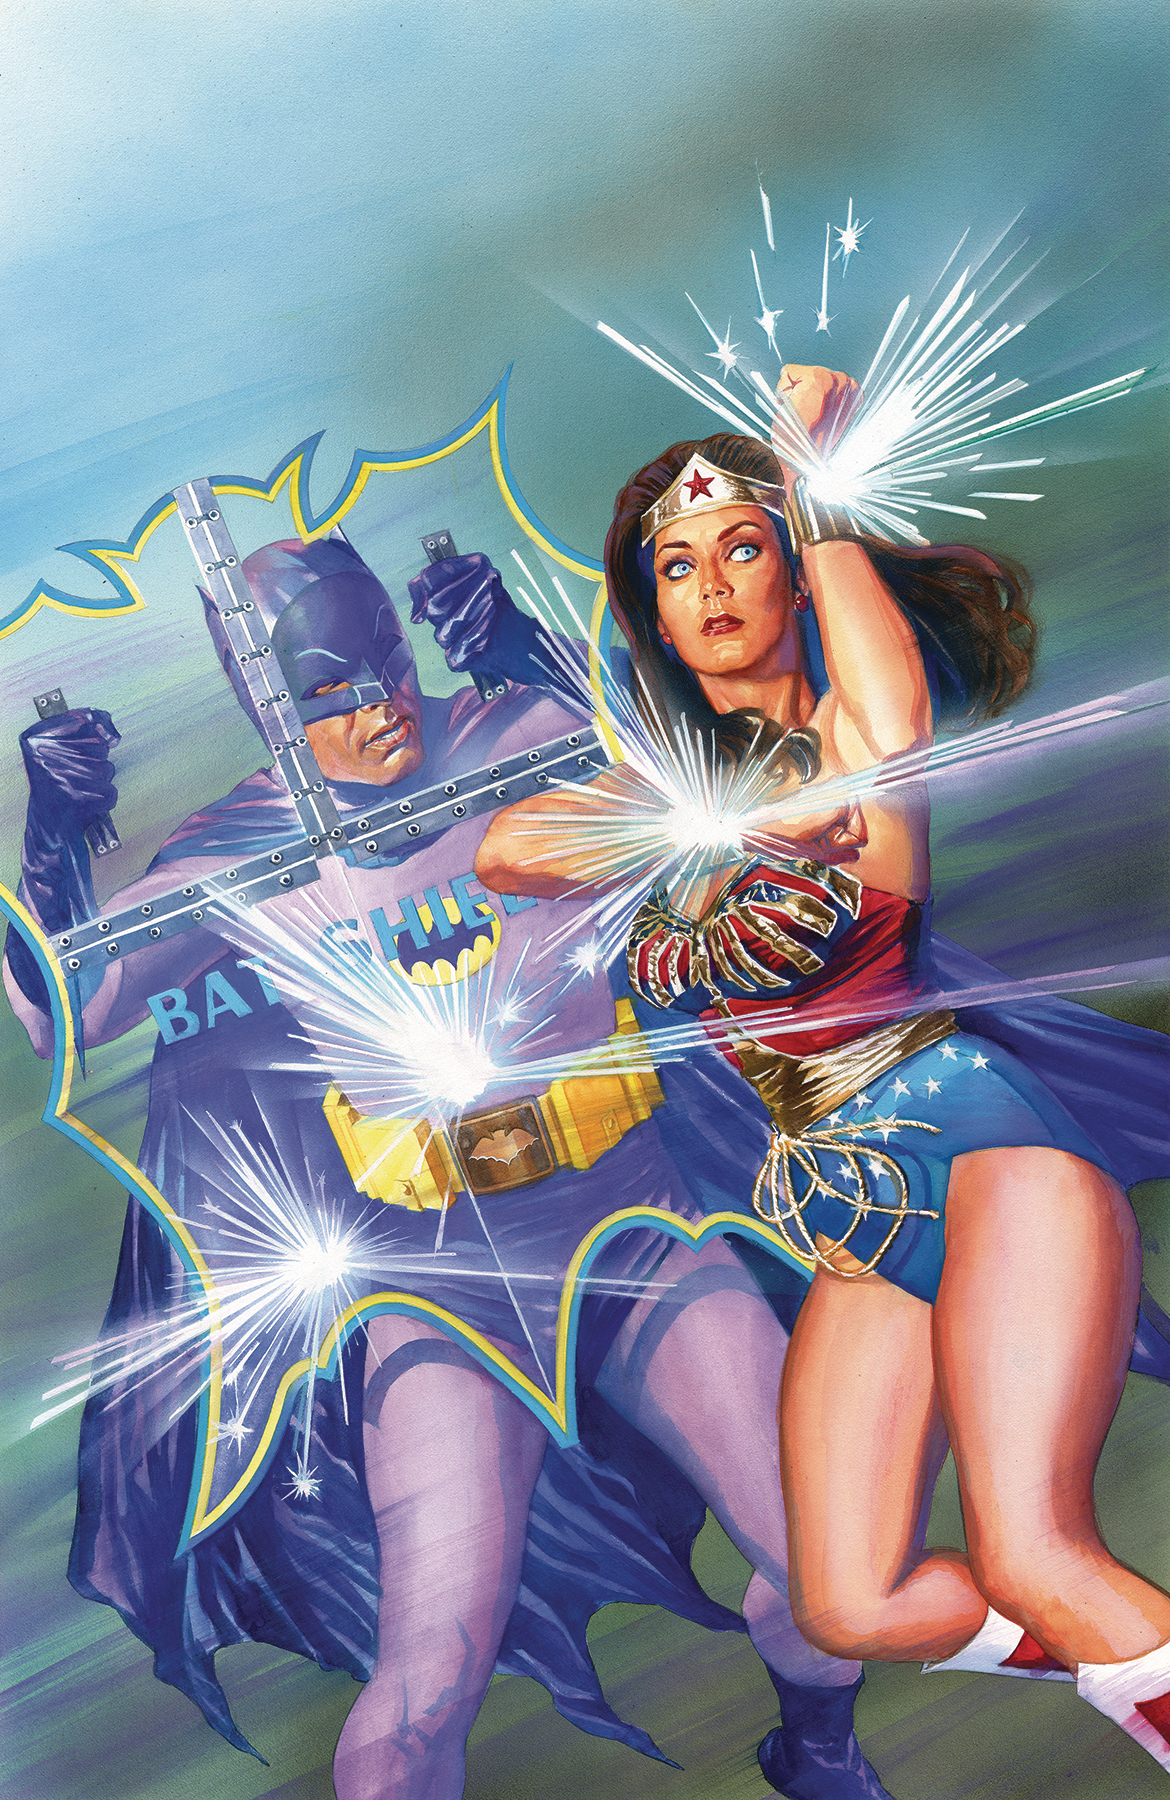 BATMAN 66 MEETS WONDER WOMAN 77 #1 (OF 6) VAR ED